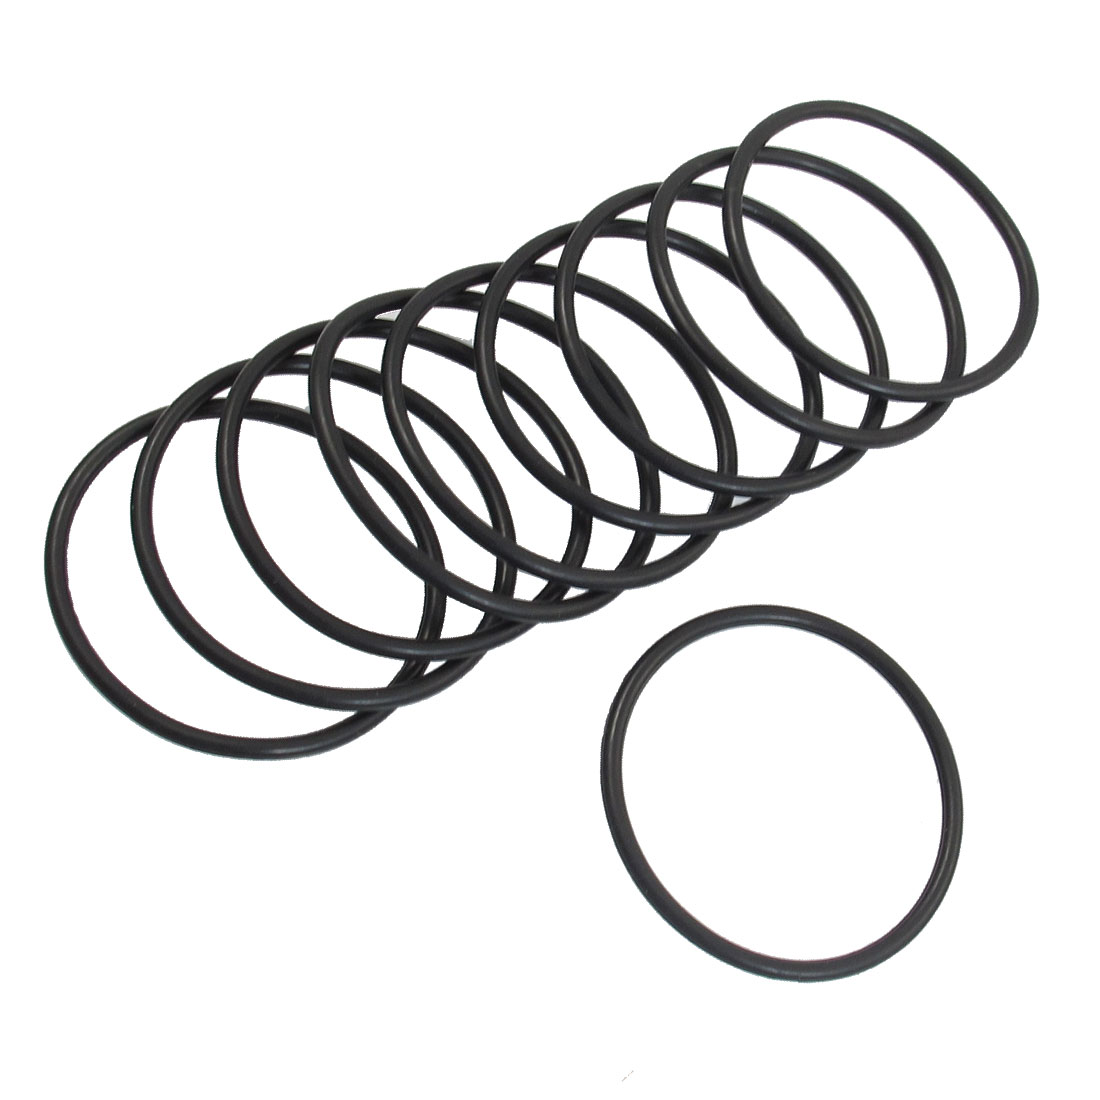 10 Pcs 33mm x 2mm Industrial Flexible Rubber O Ring Seal Washer